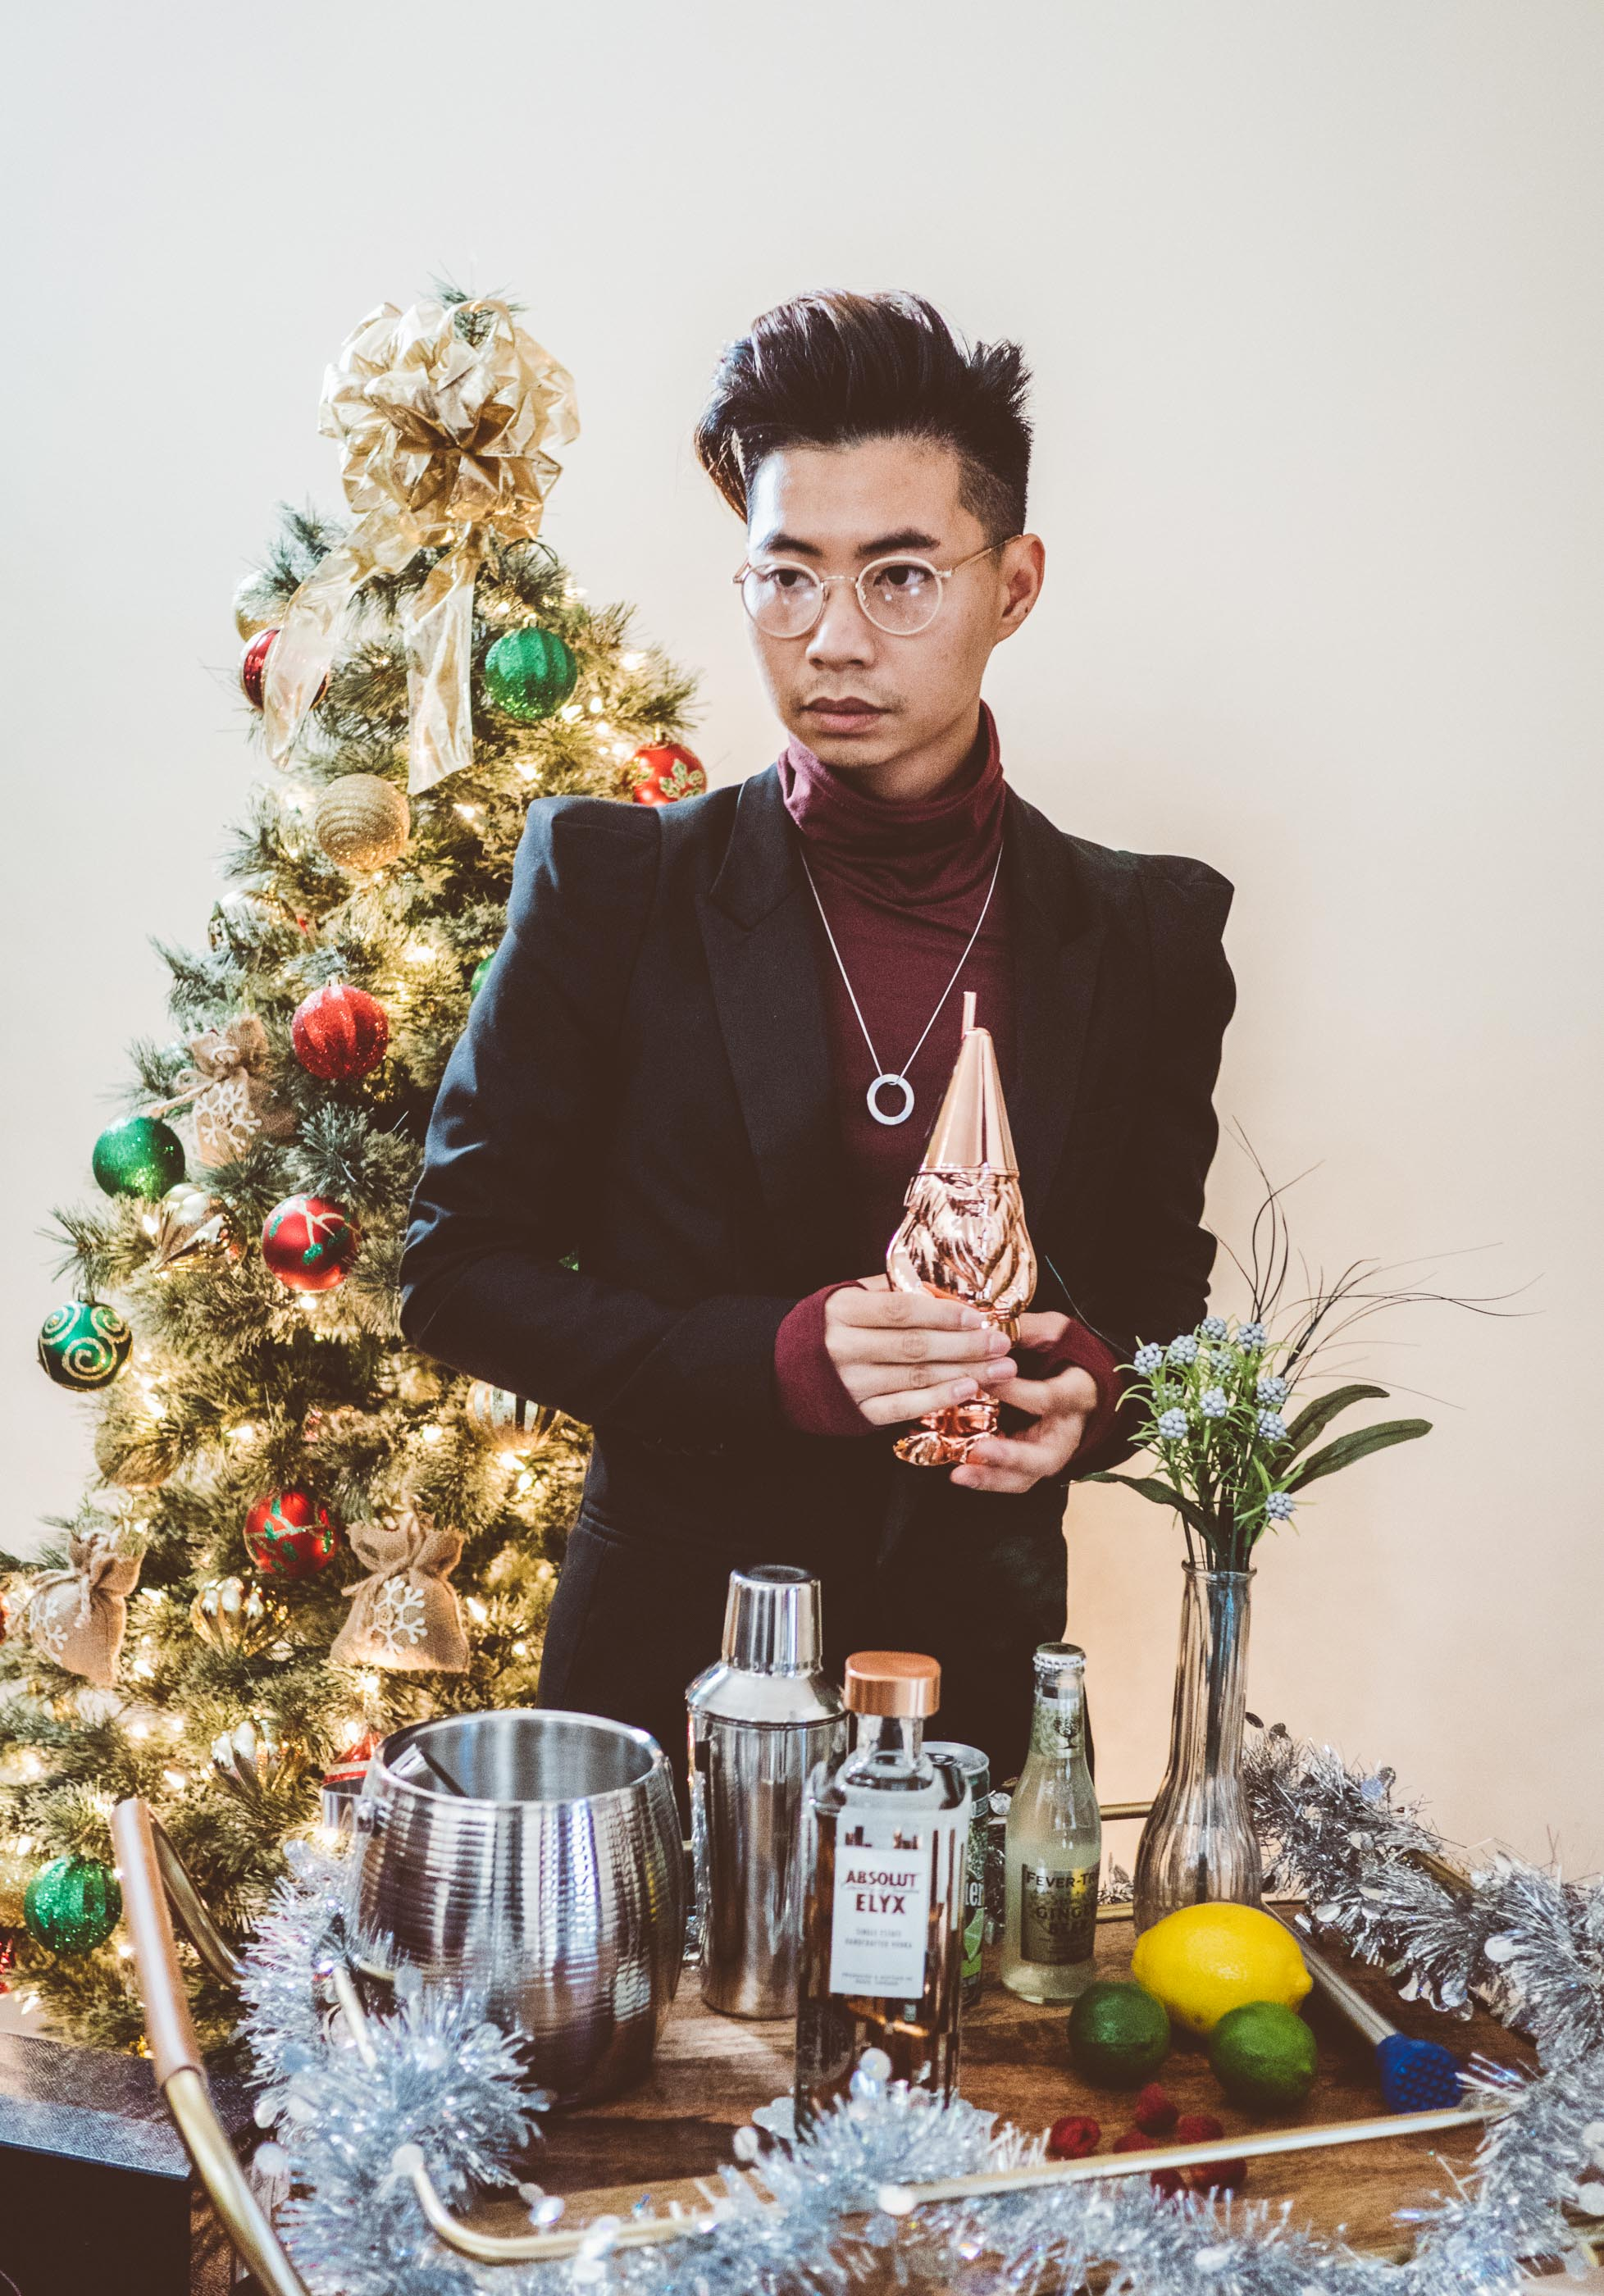 All good and joyous things start with - an Absolut Elyx holiday cocktail.